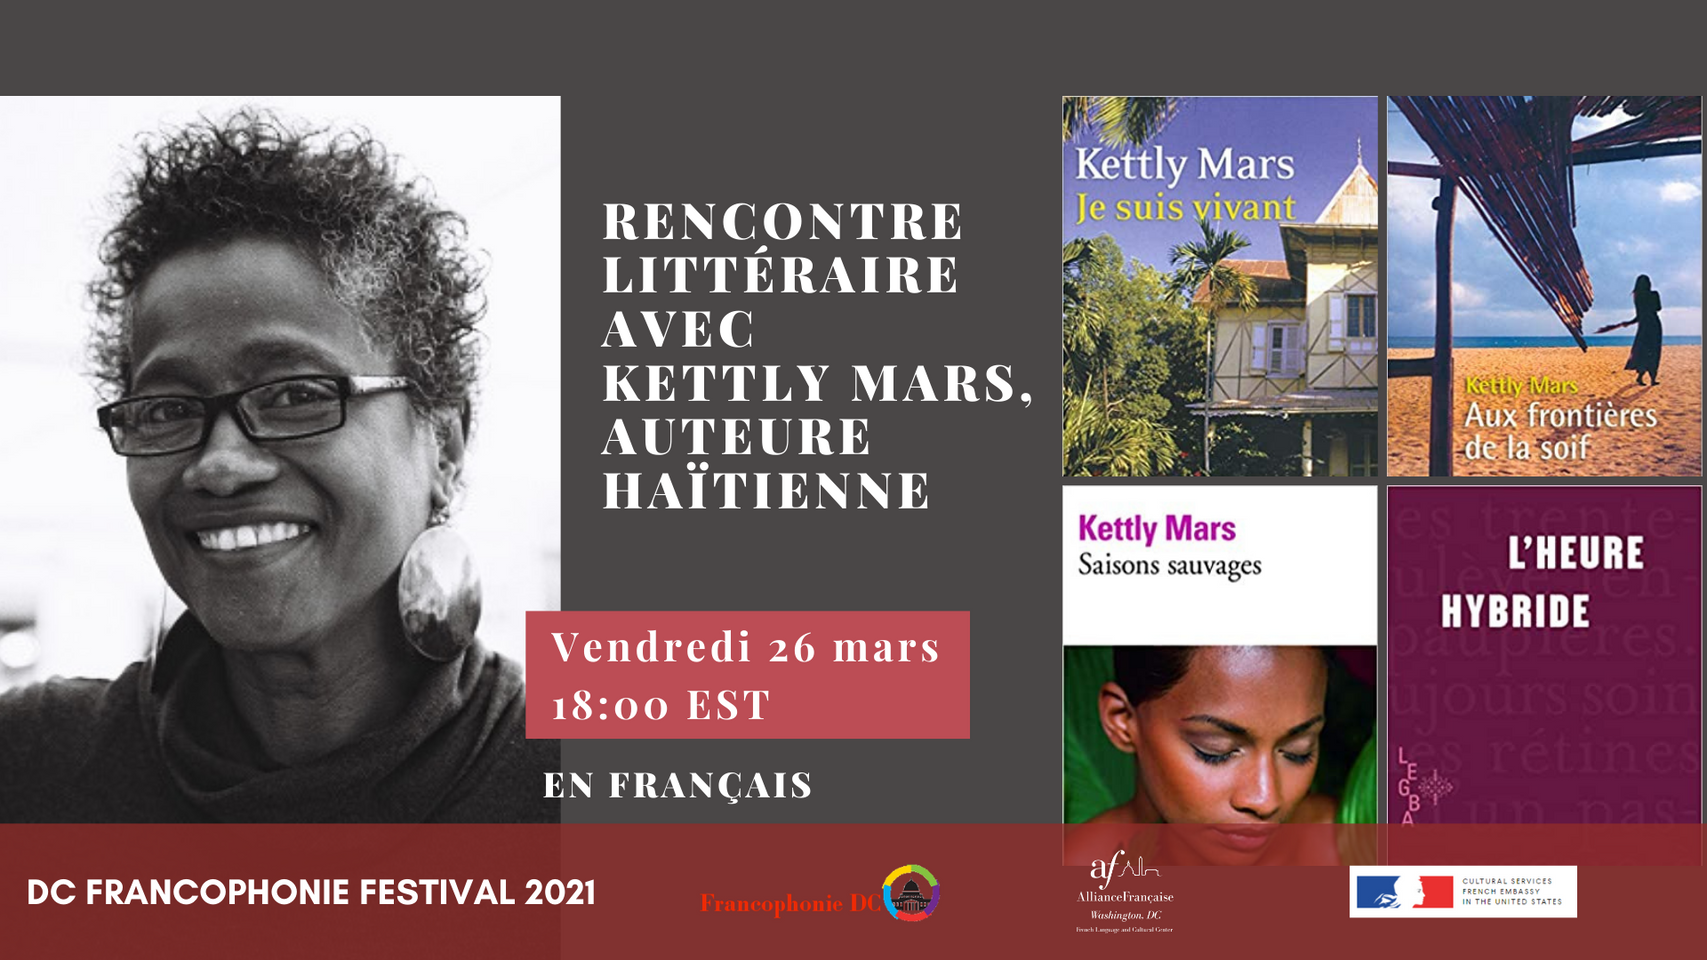 Book Talk with Kettly Mars, Haitian Author